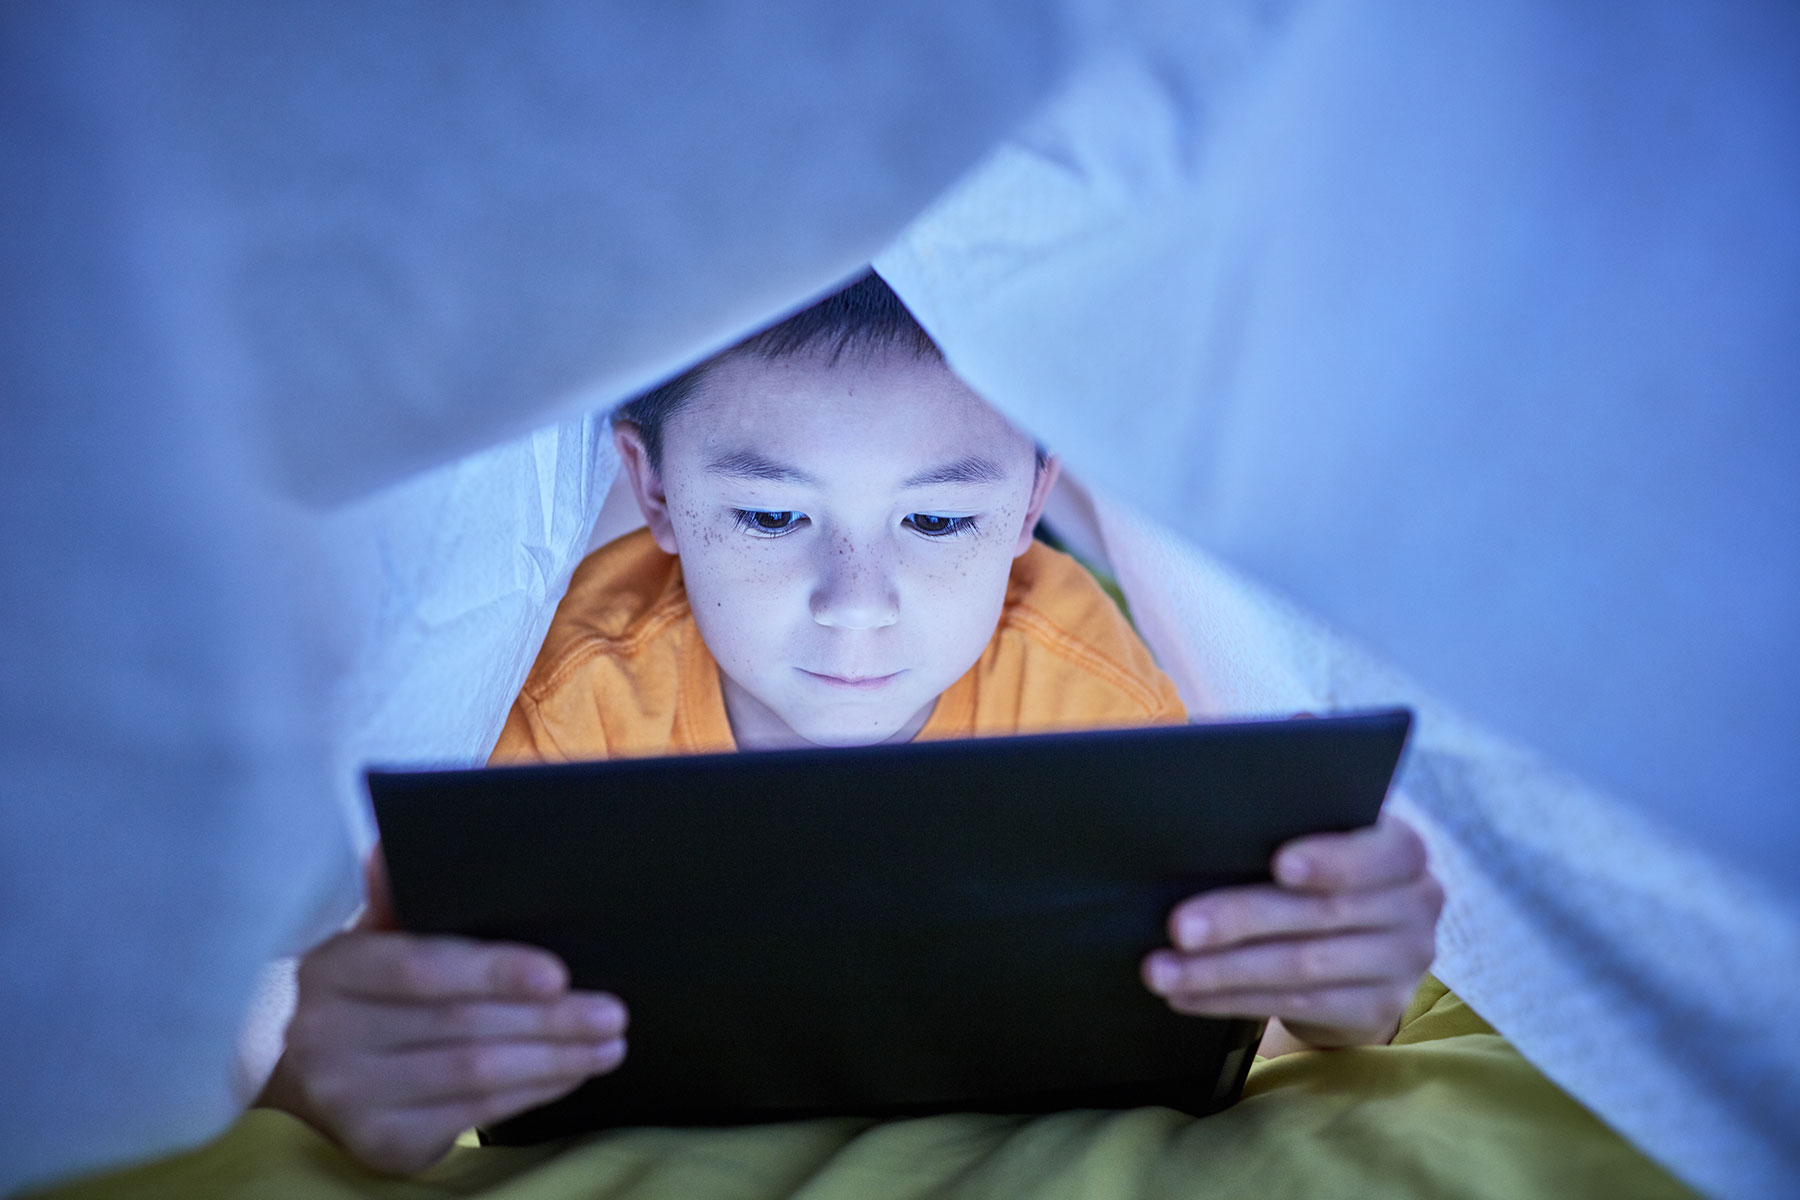 boy on tablet under covers